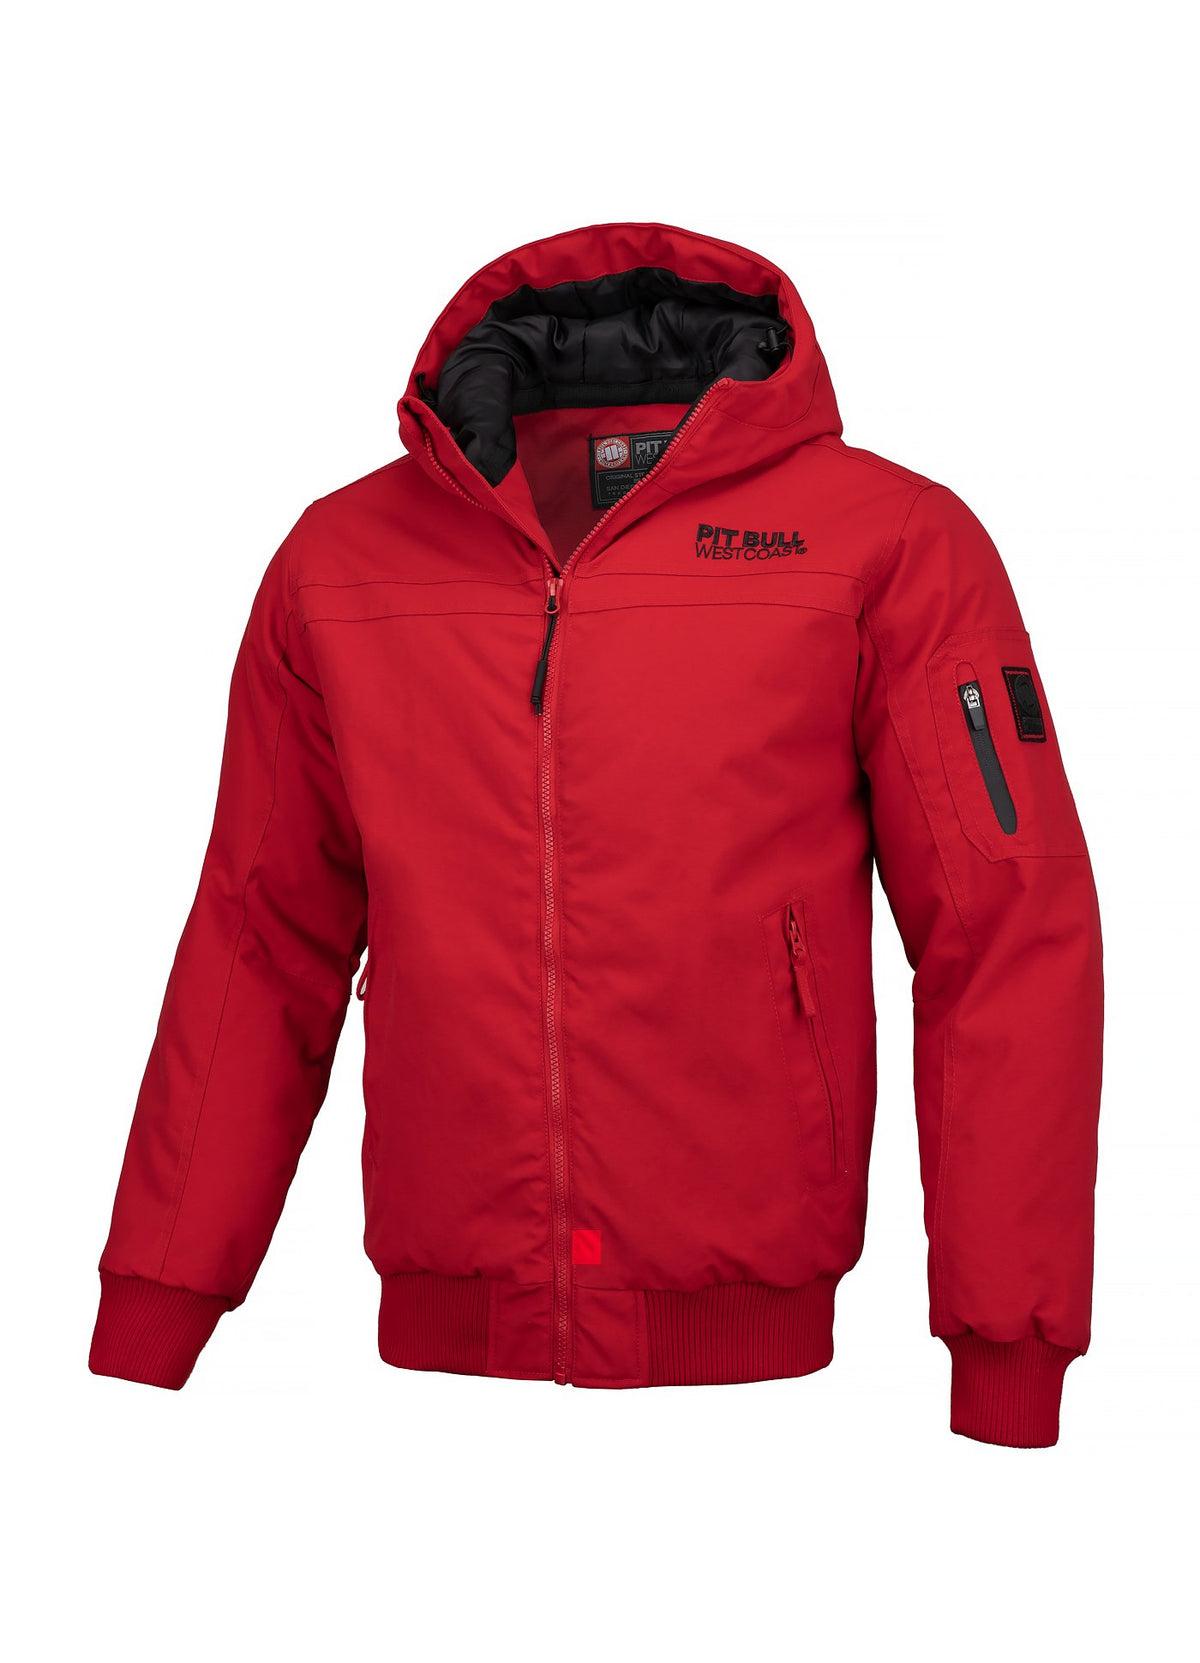 JACKET BALBOA II RED - Pitbull West Coast U.S.A.